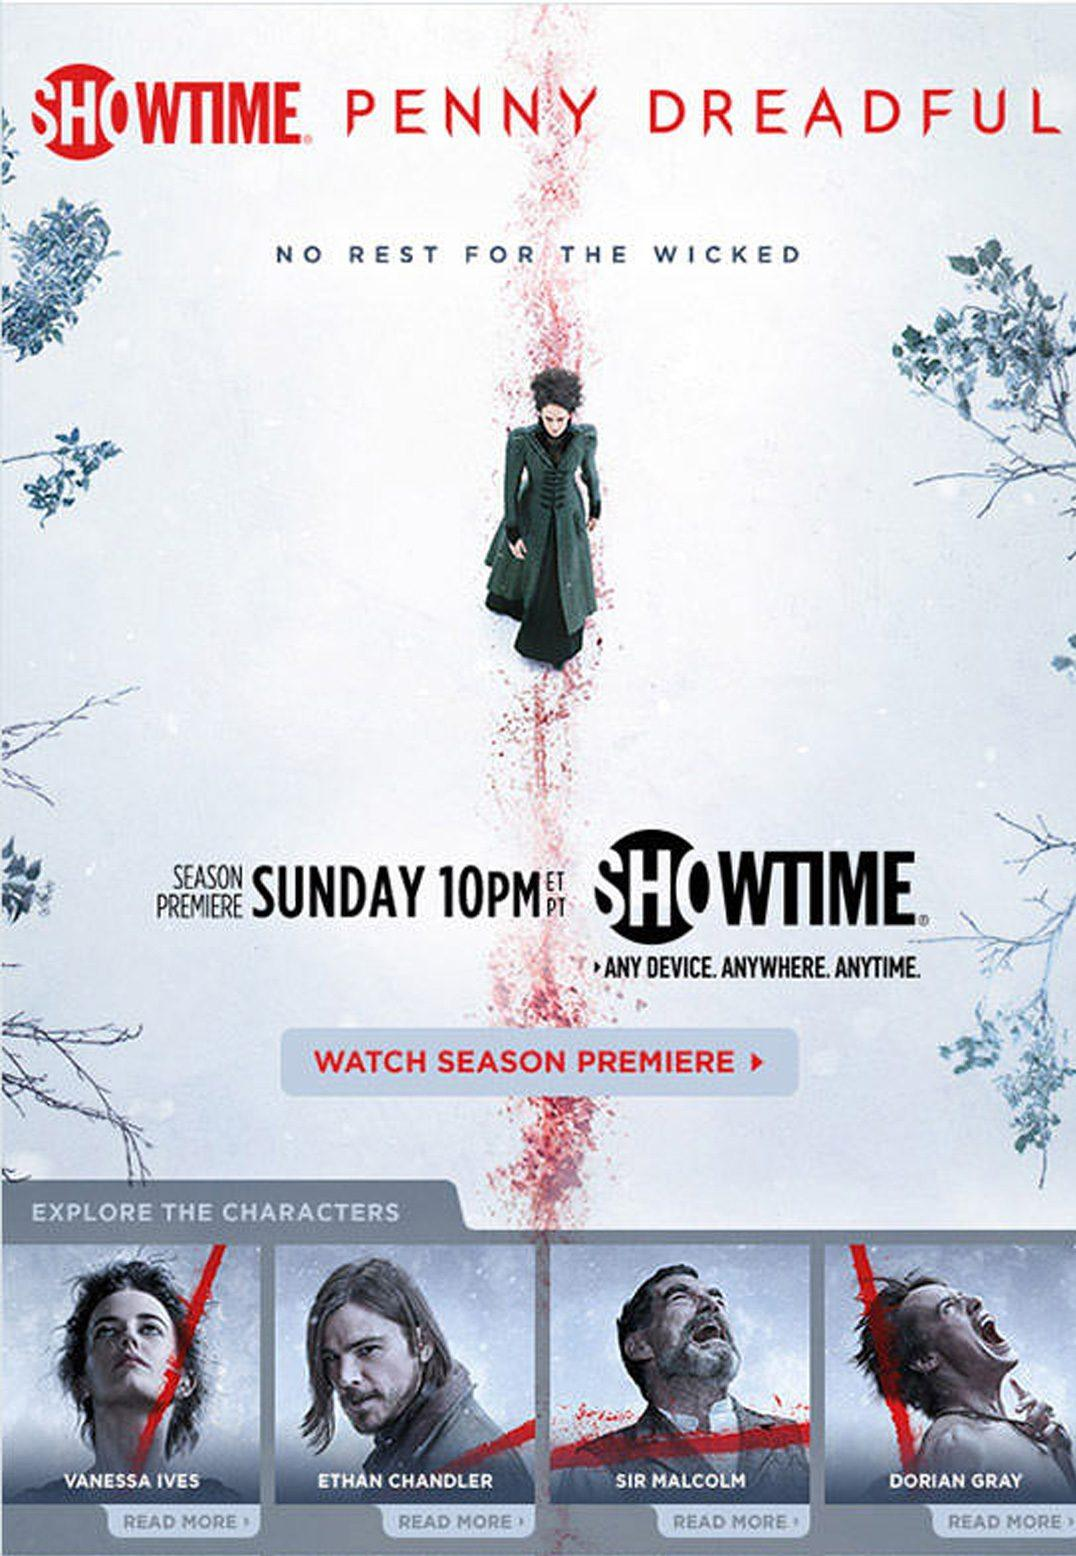 Take this example from Showtime and their promotion of the show Penny Dreadful. The show is set to premiere on a given Sunday at 10 p.m., so if they started sending out messages on Friday at 8 p.m., the email message could easily be missed over thanks to the weekend, and the user stands a higher chance of missing out on the season premiere.